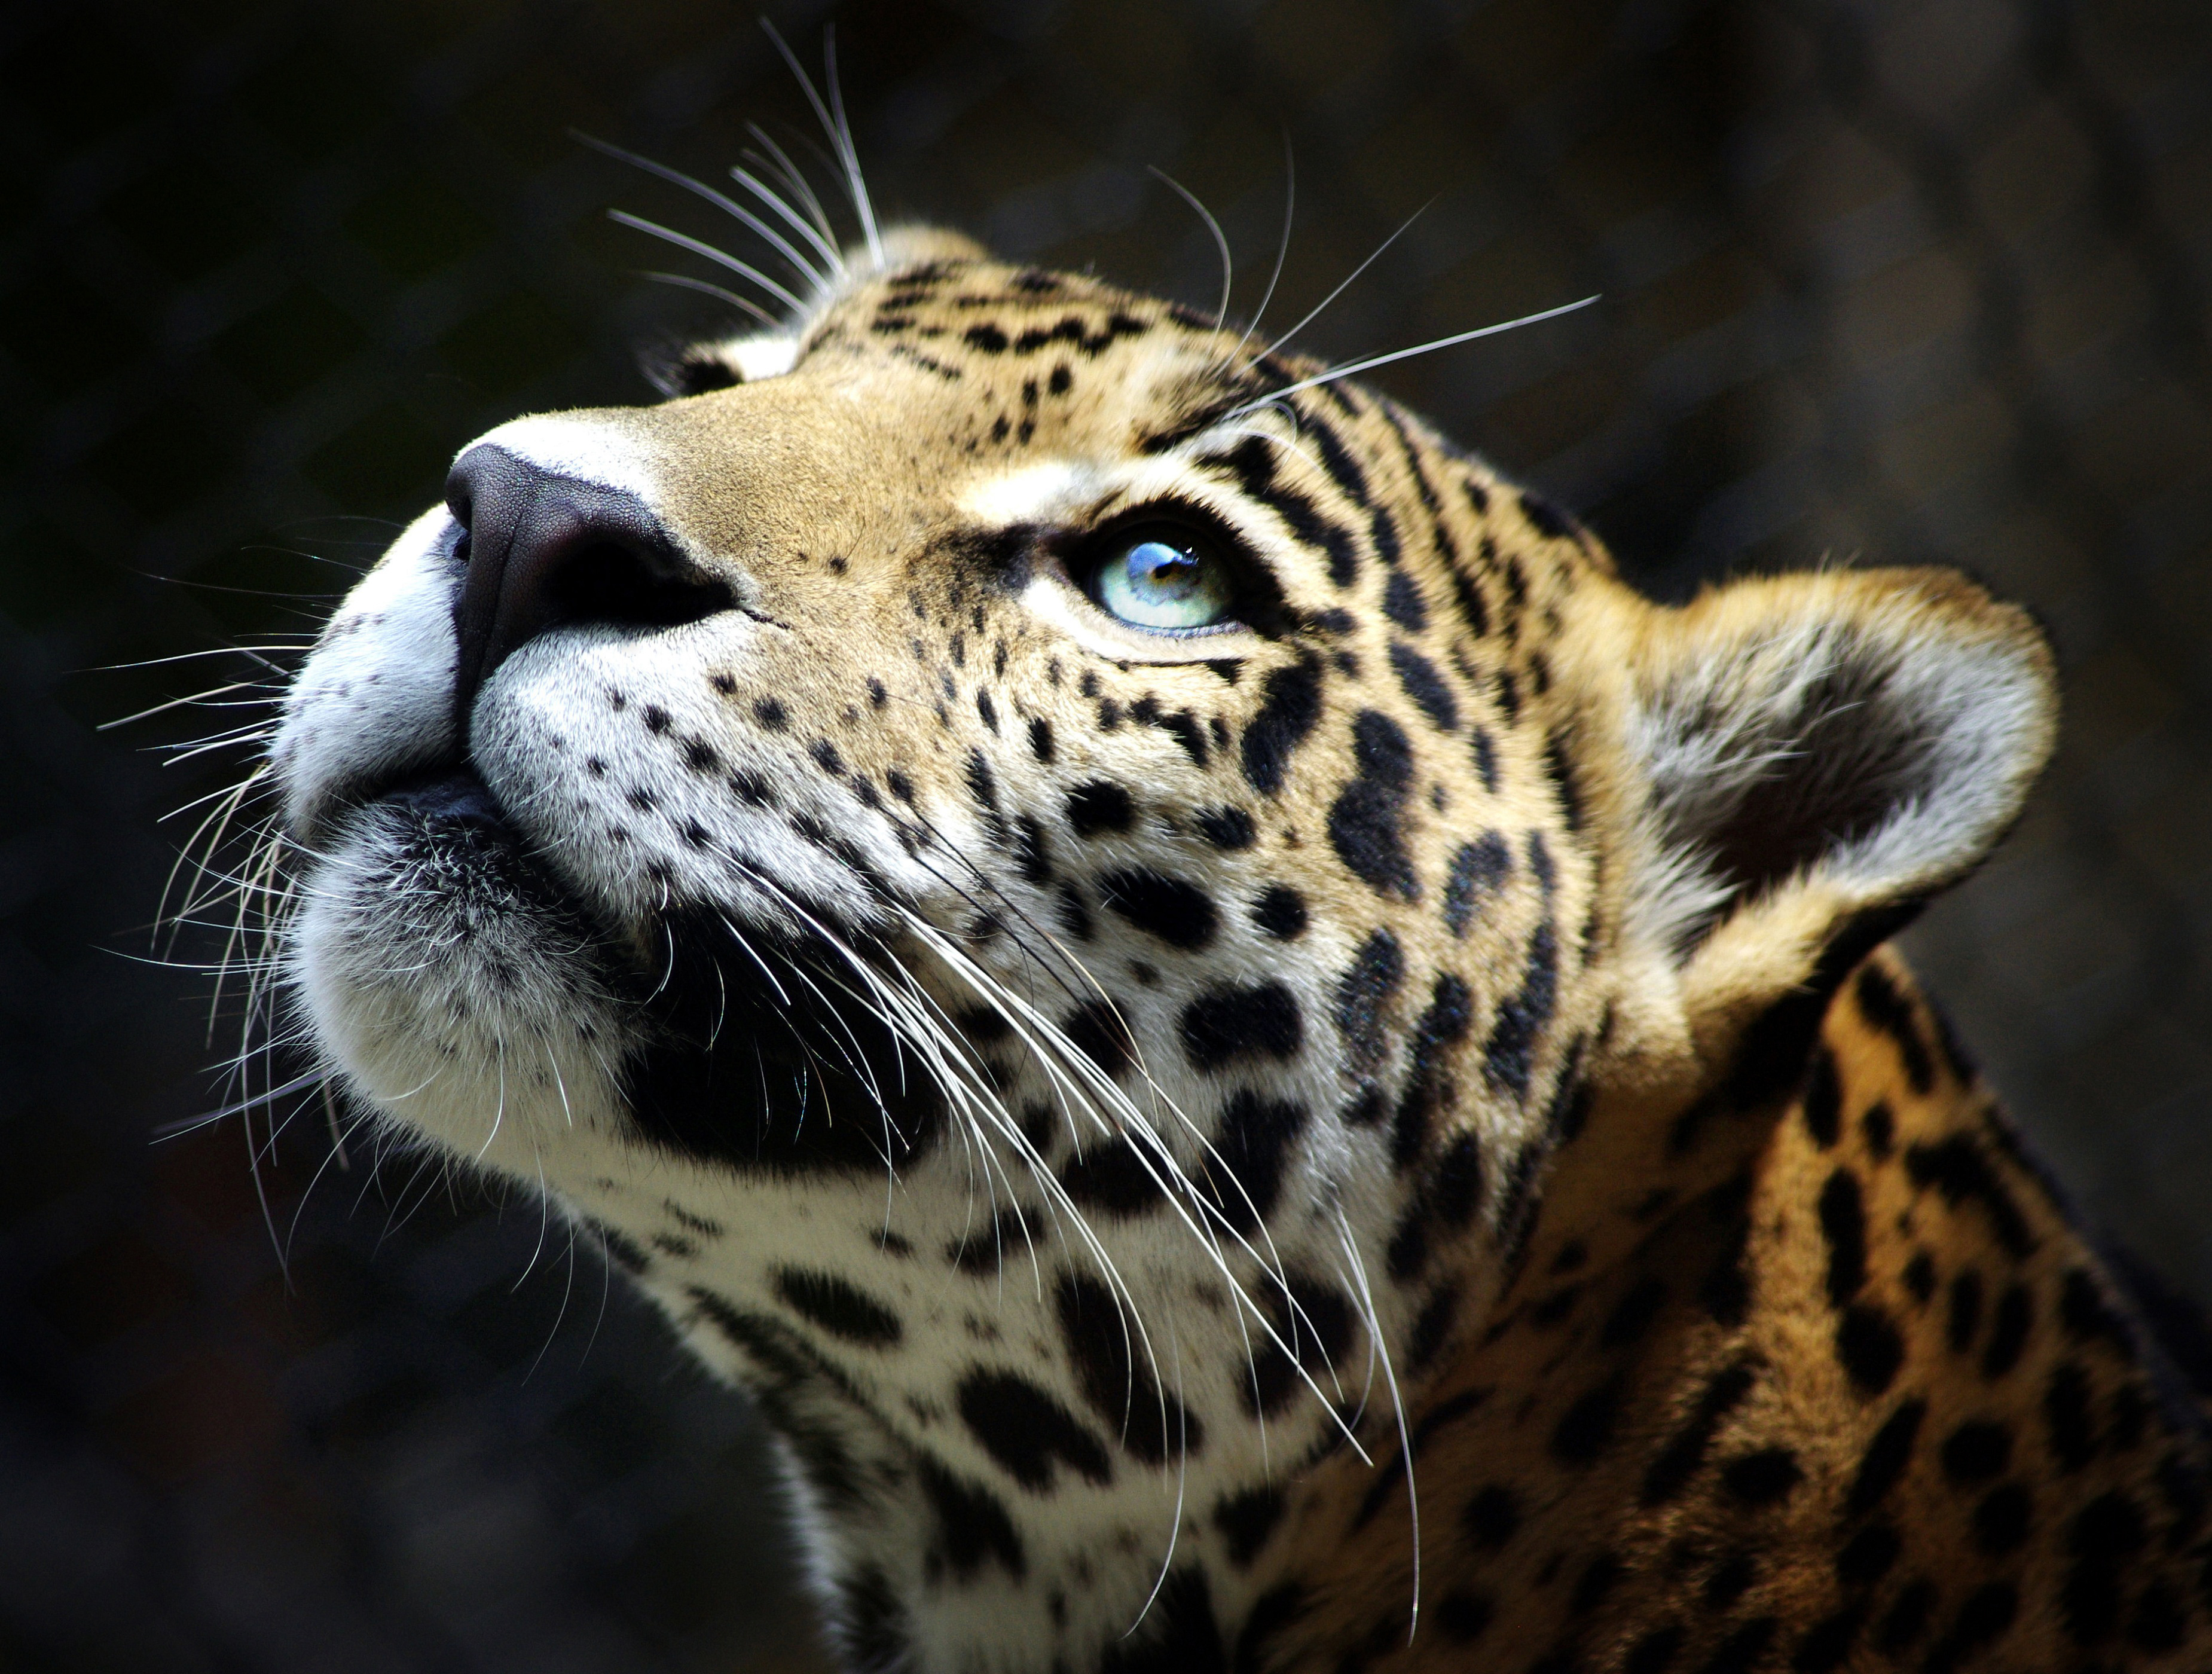 652 leopard hd wallpapers backgrounds wallpaper abyss - Animal black background wallpaper ...